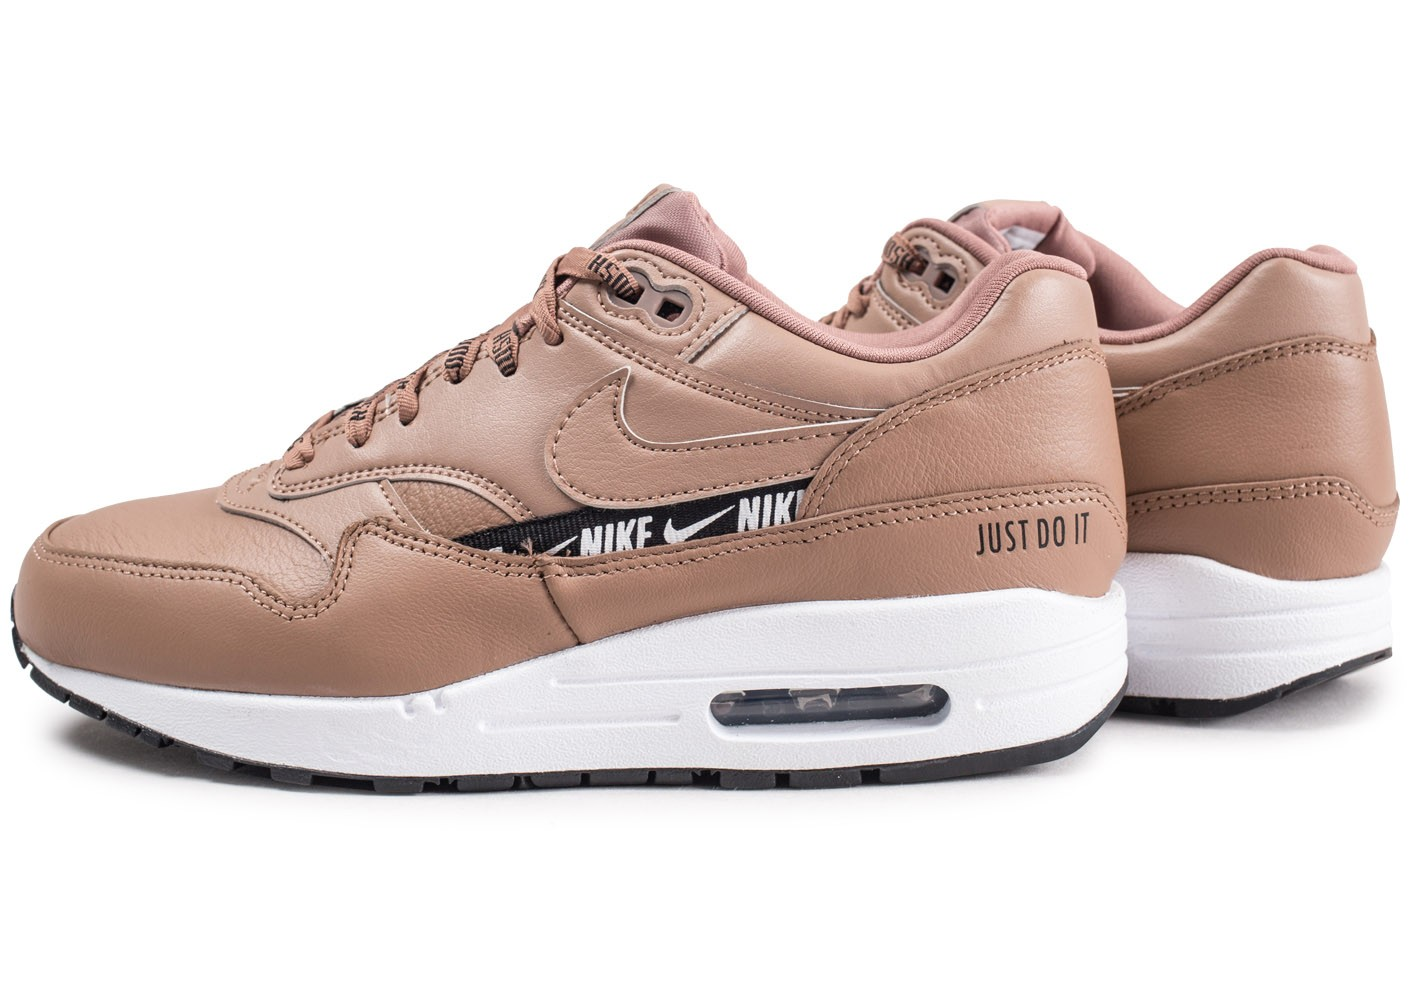 best sneakers bb690 b5640 Cliquez pour zoomer Chaussures Nike Nike Air Max 1 SE Overbranded beige  femme vue extérieure ...